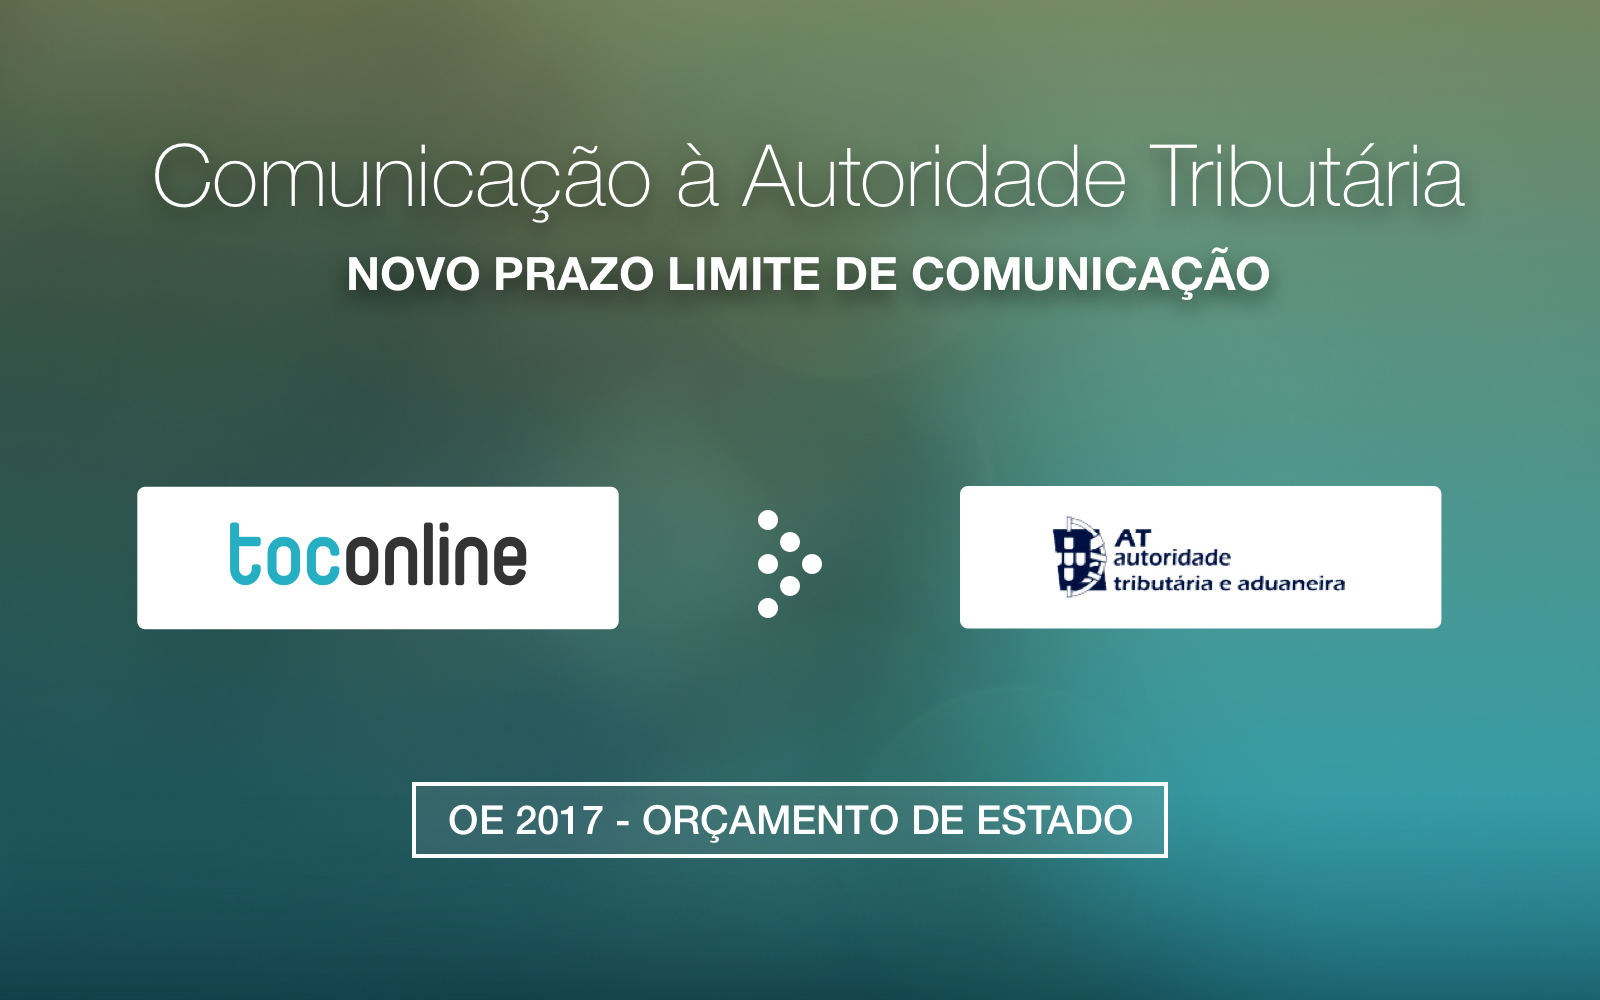 Post comunicacao at